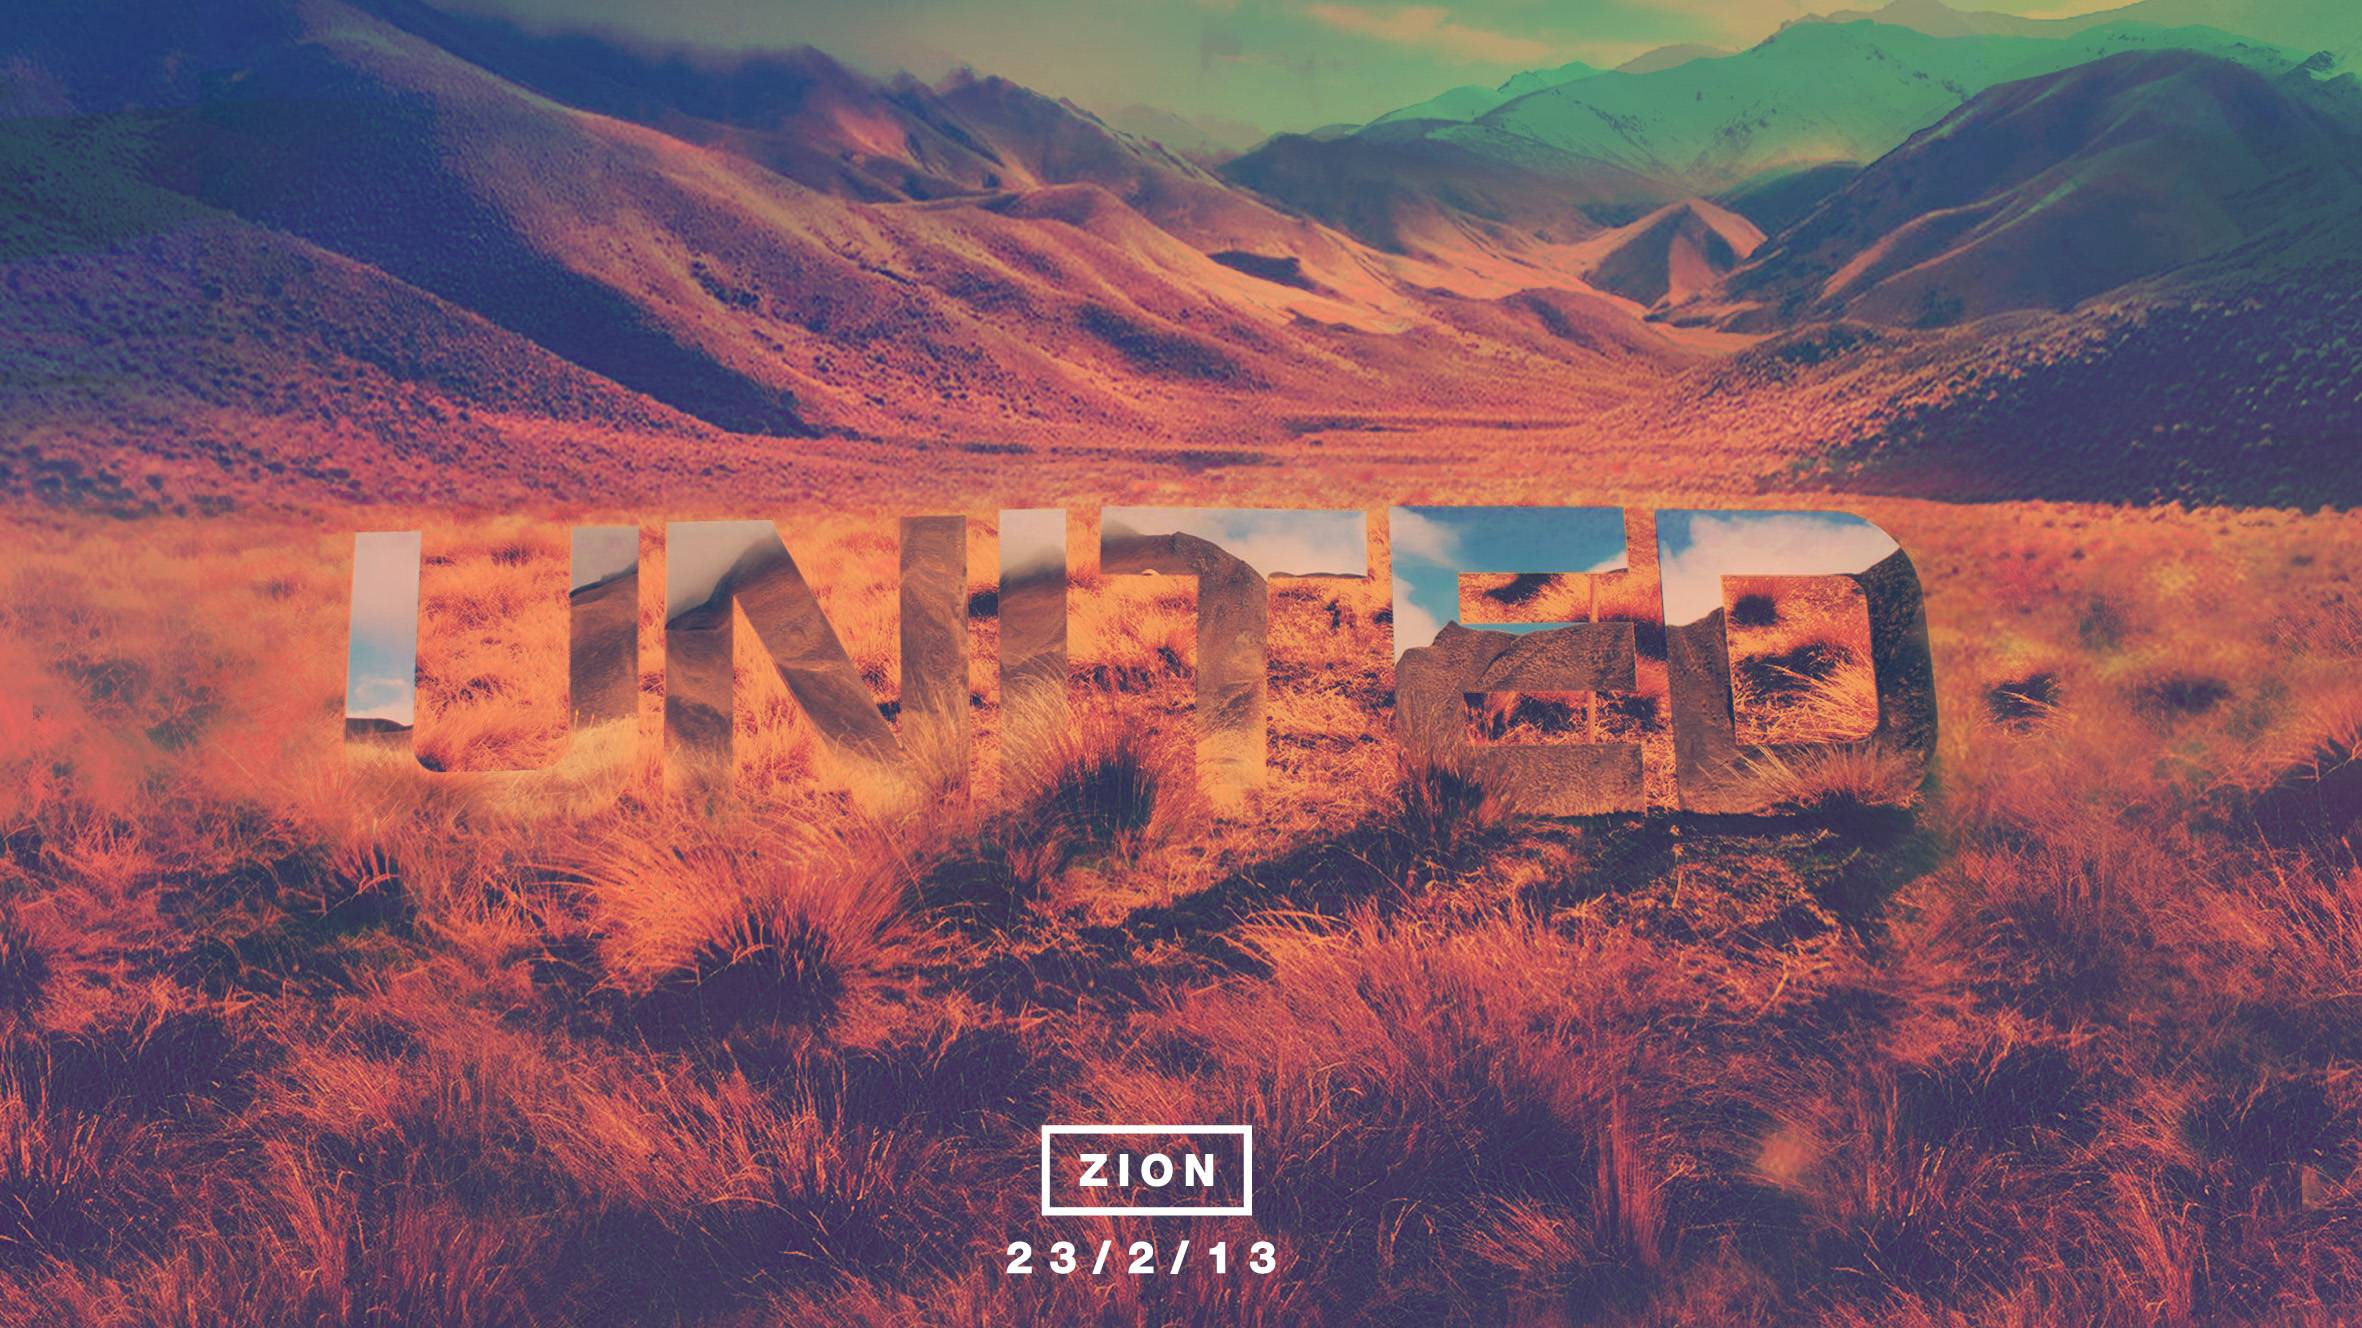 Hillsong United 2015 Wallpapers 2362x1328